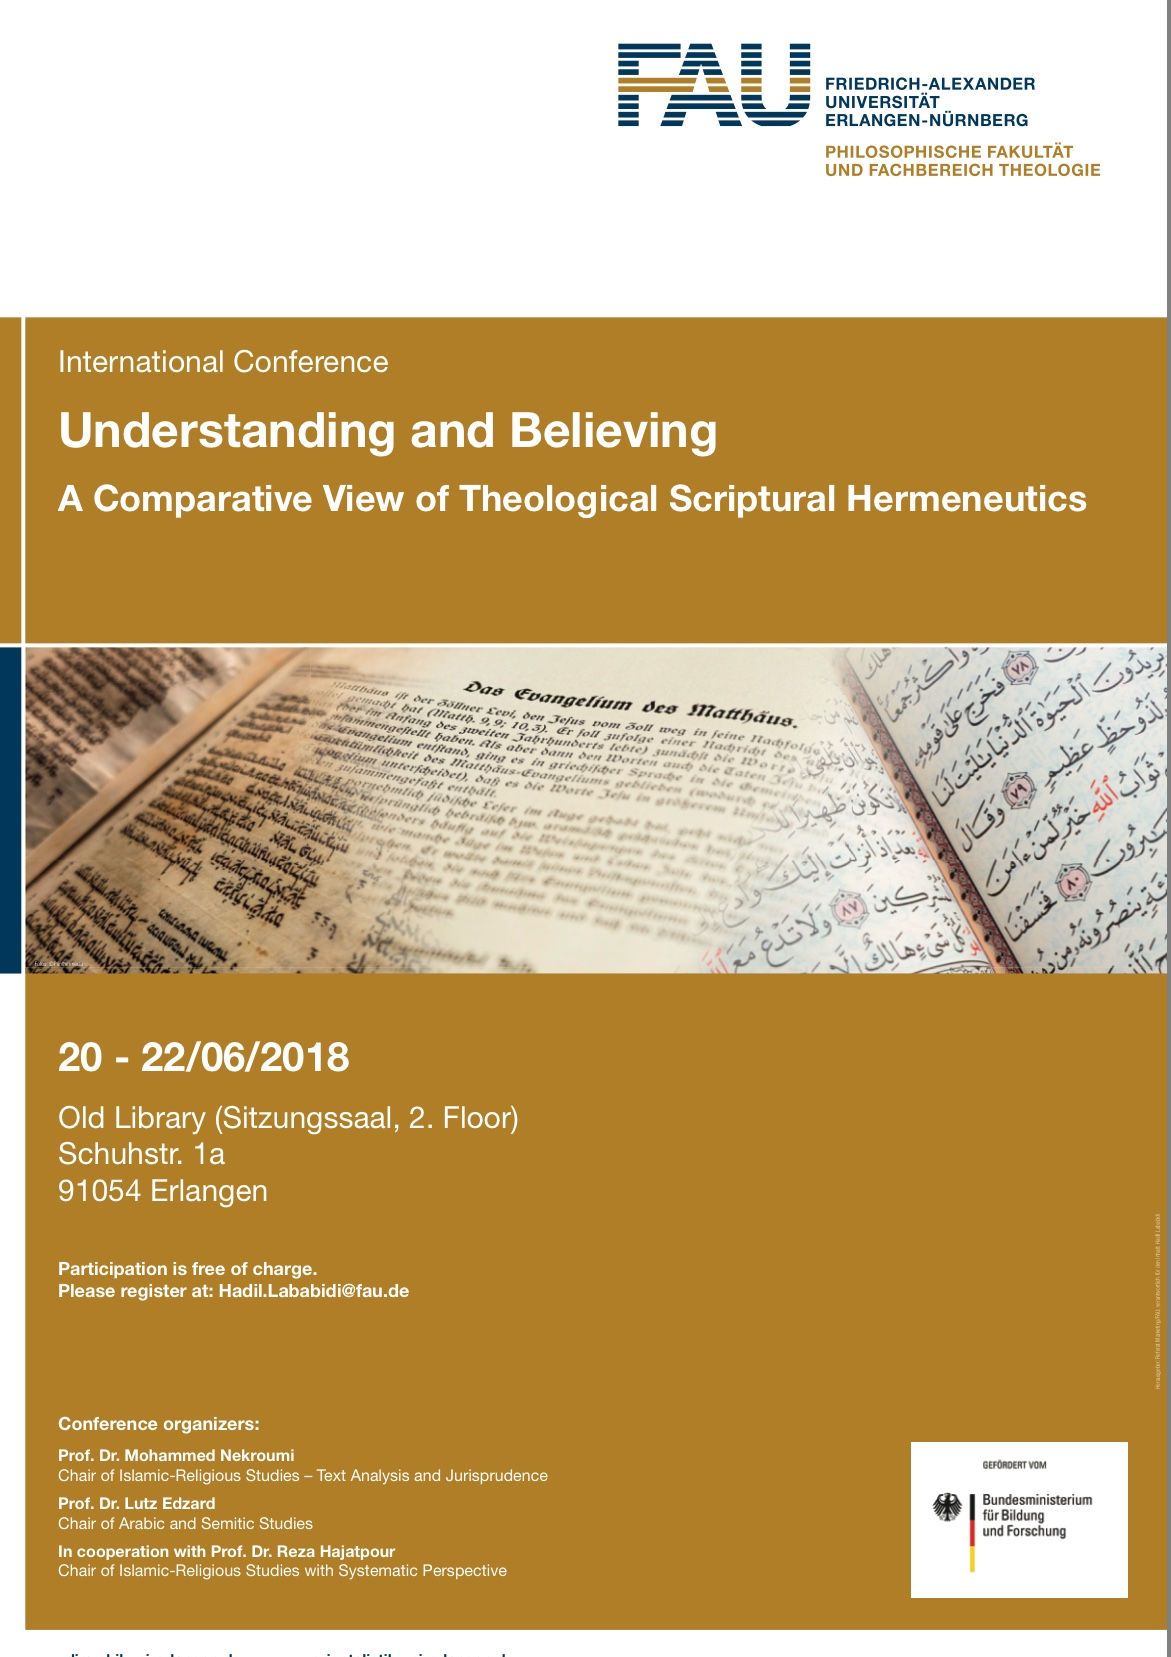 "Zum Artikel ""Impressionen von der Tagung 'Understanding and Believing'"""